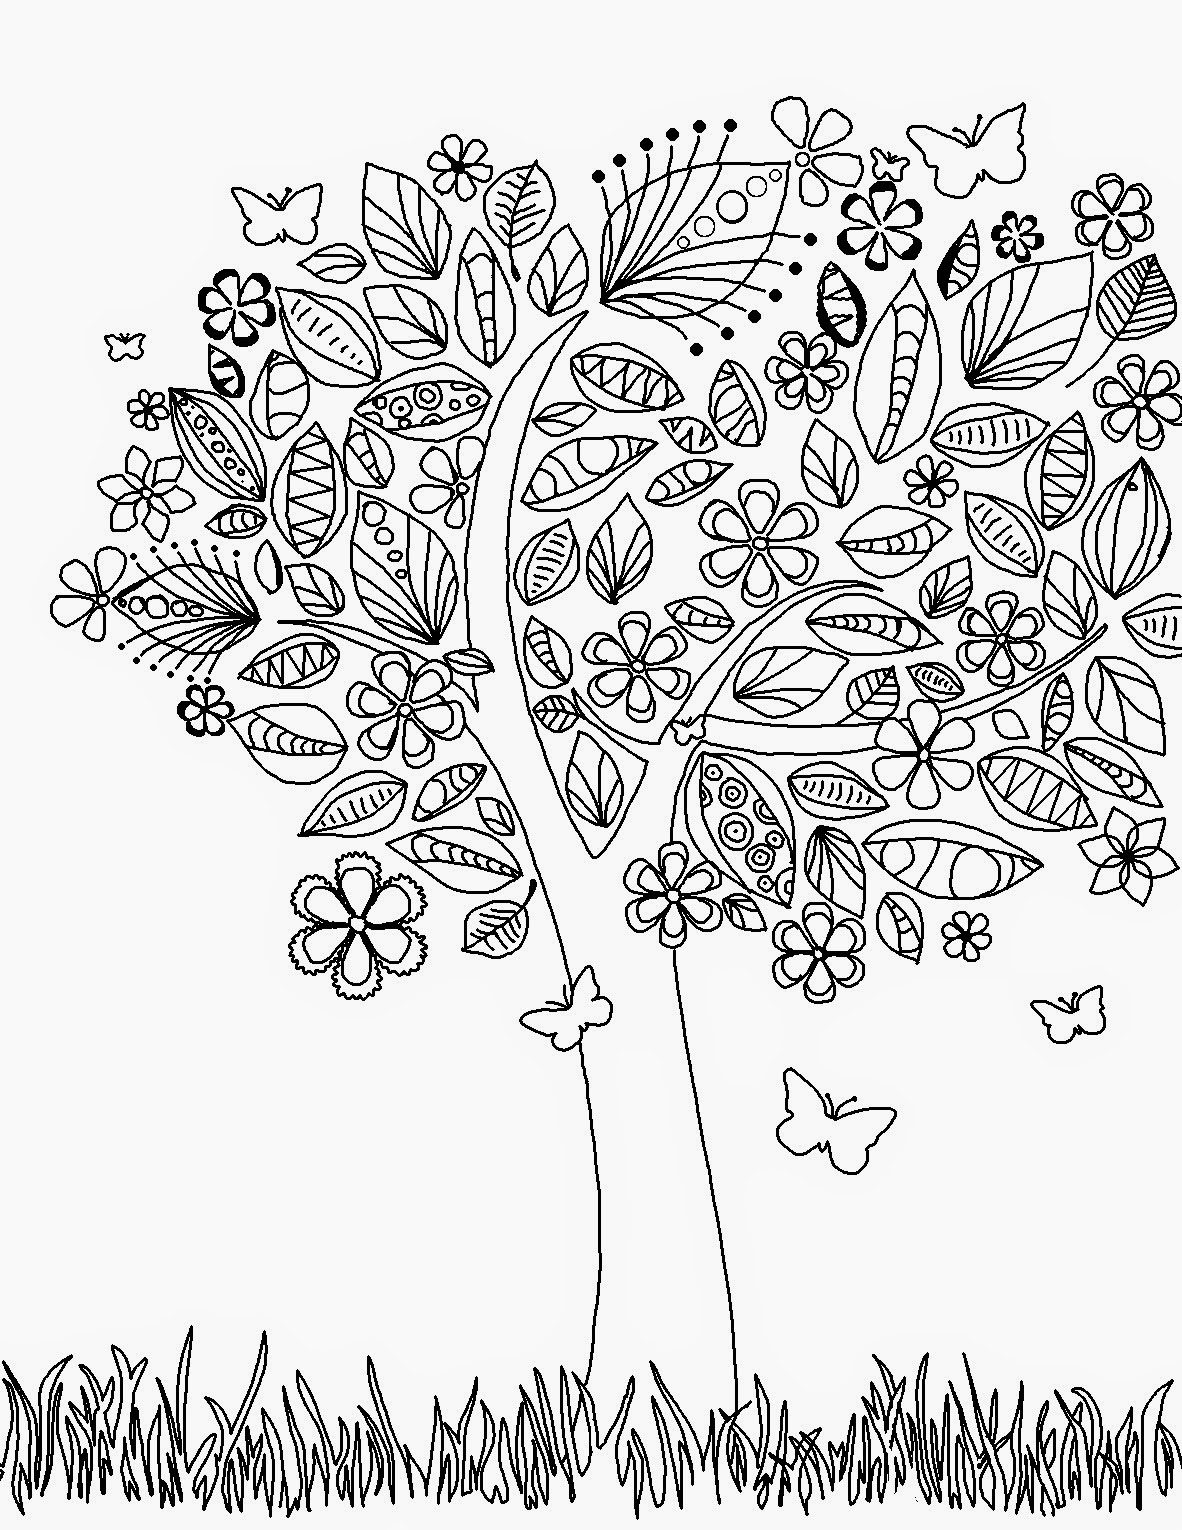 Coloring Sheet for Kids Coloring